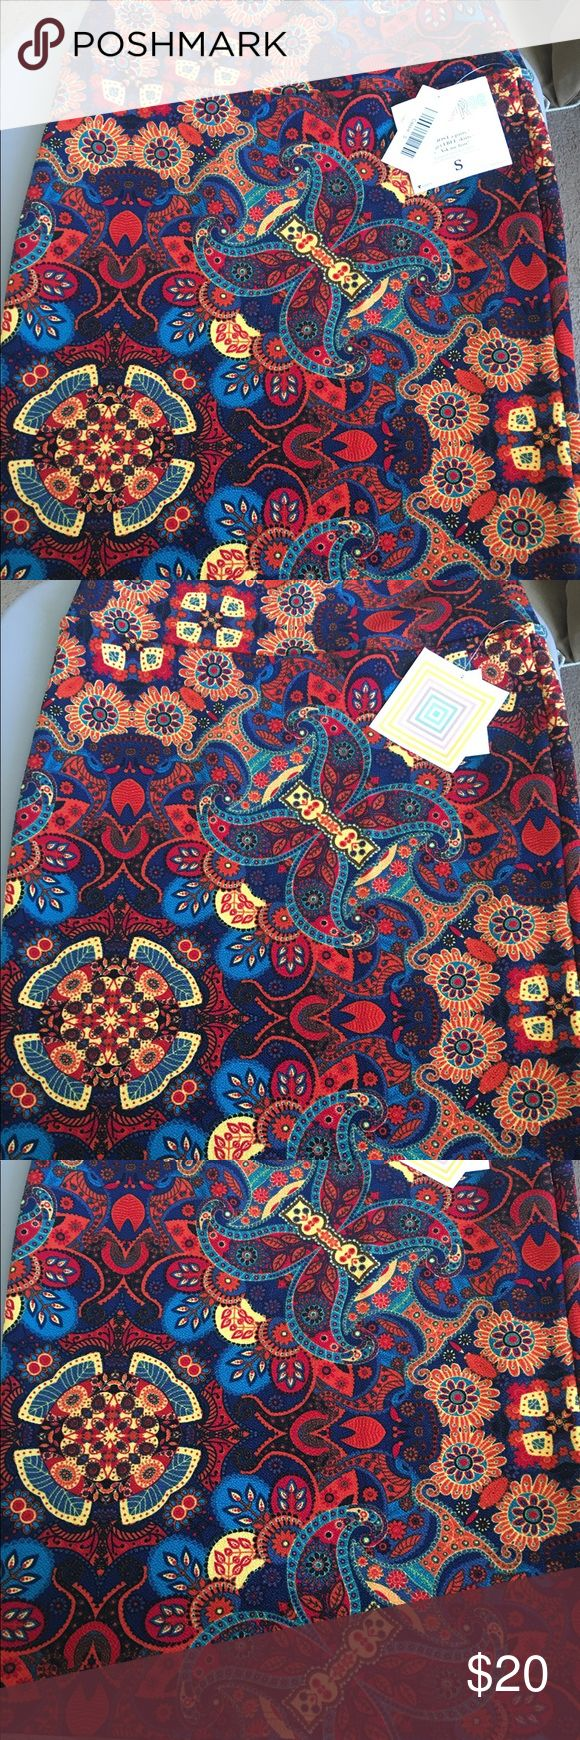 Brand New Beautiful Cassie Skirt! This is a gorgeous print! Size Small Cassie Skirt! Perfect to pair with a tank top, short sleeve, jean jacket, or cardigan! LuLaRoe Skirts Pencil